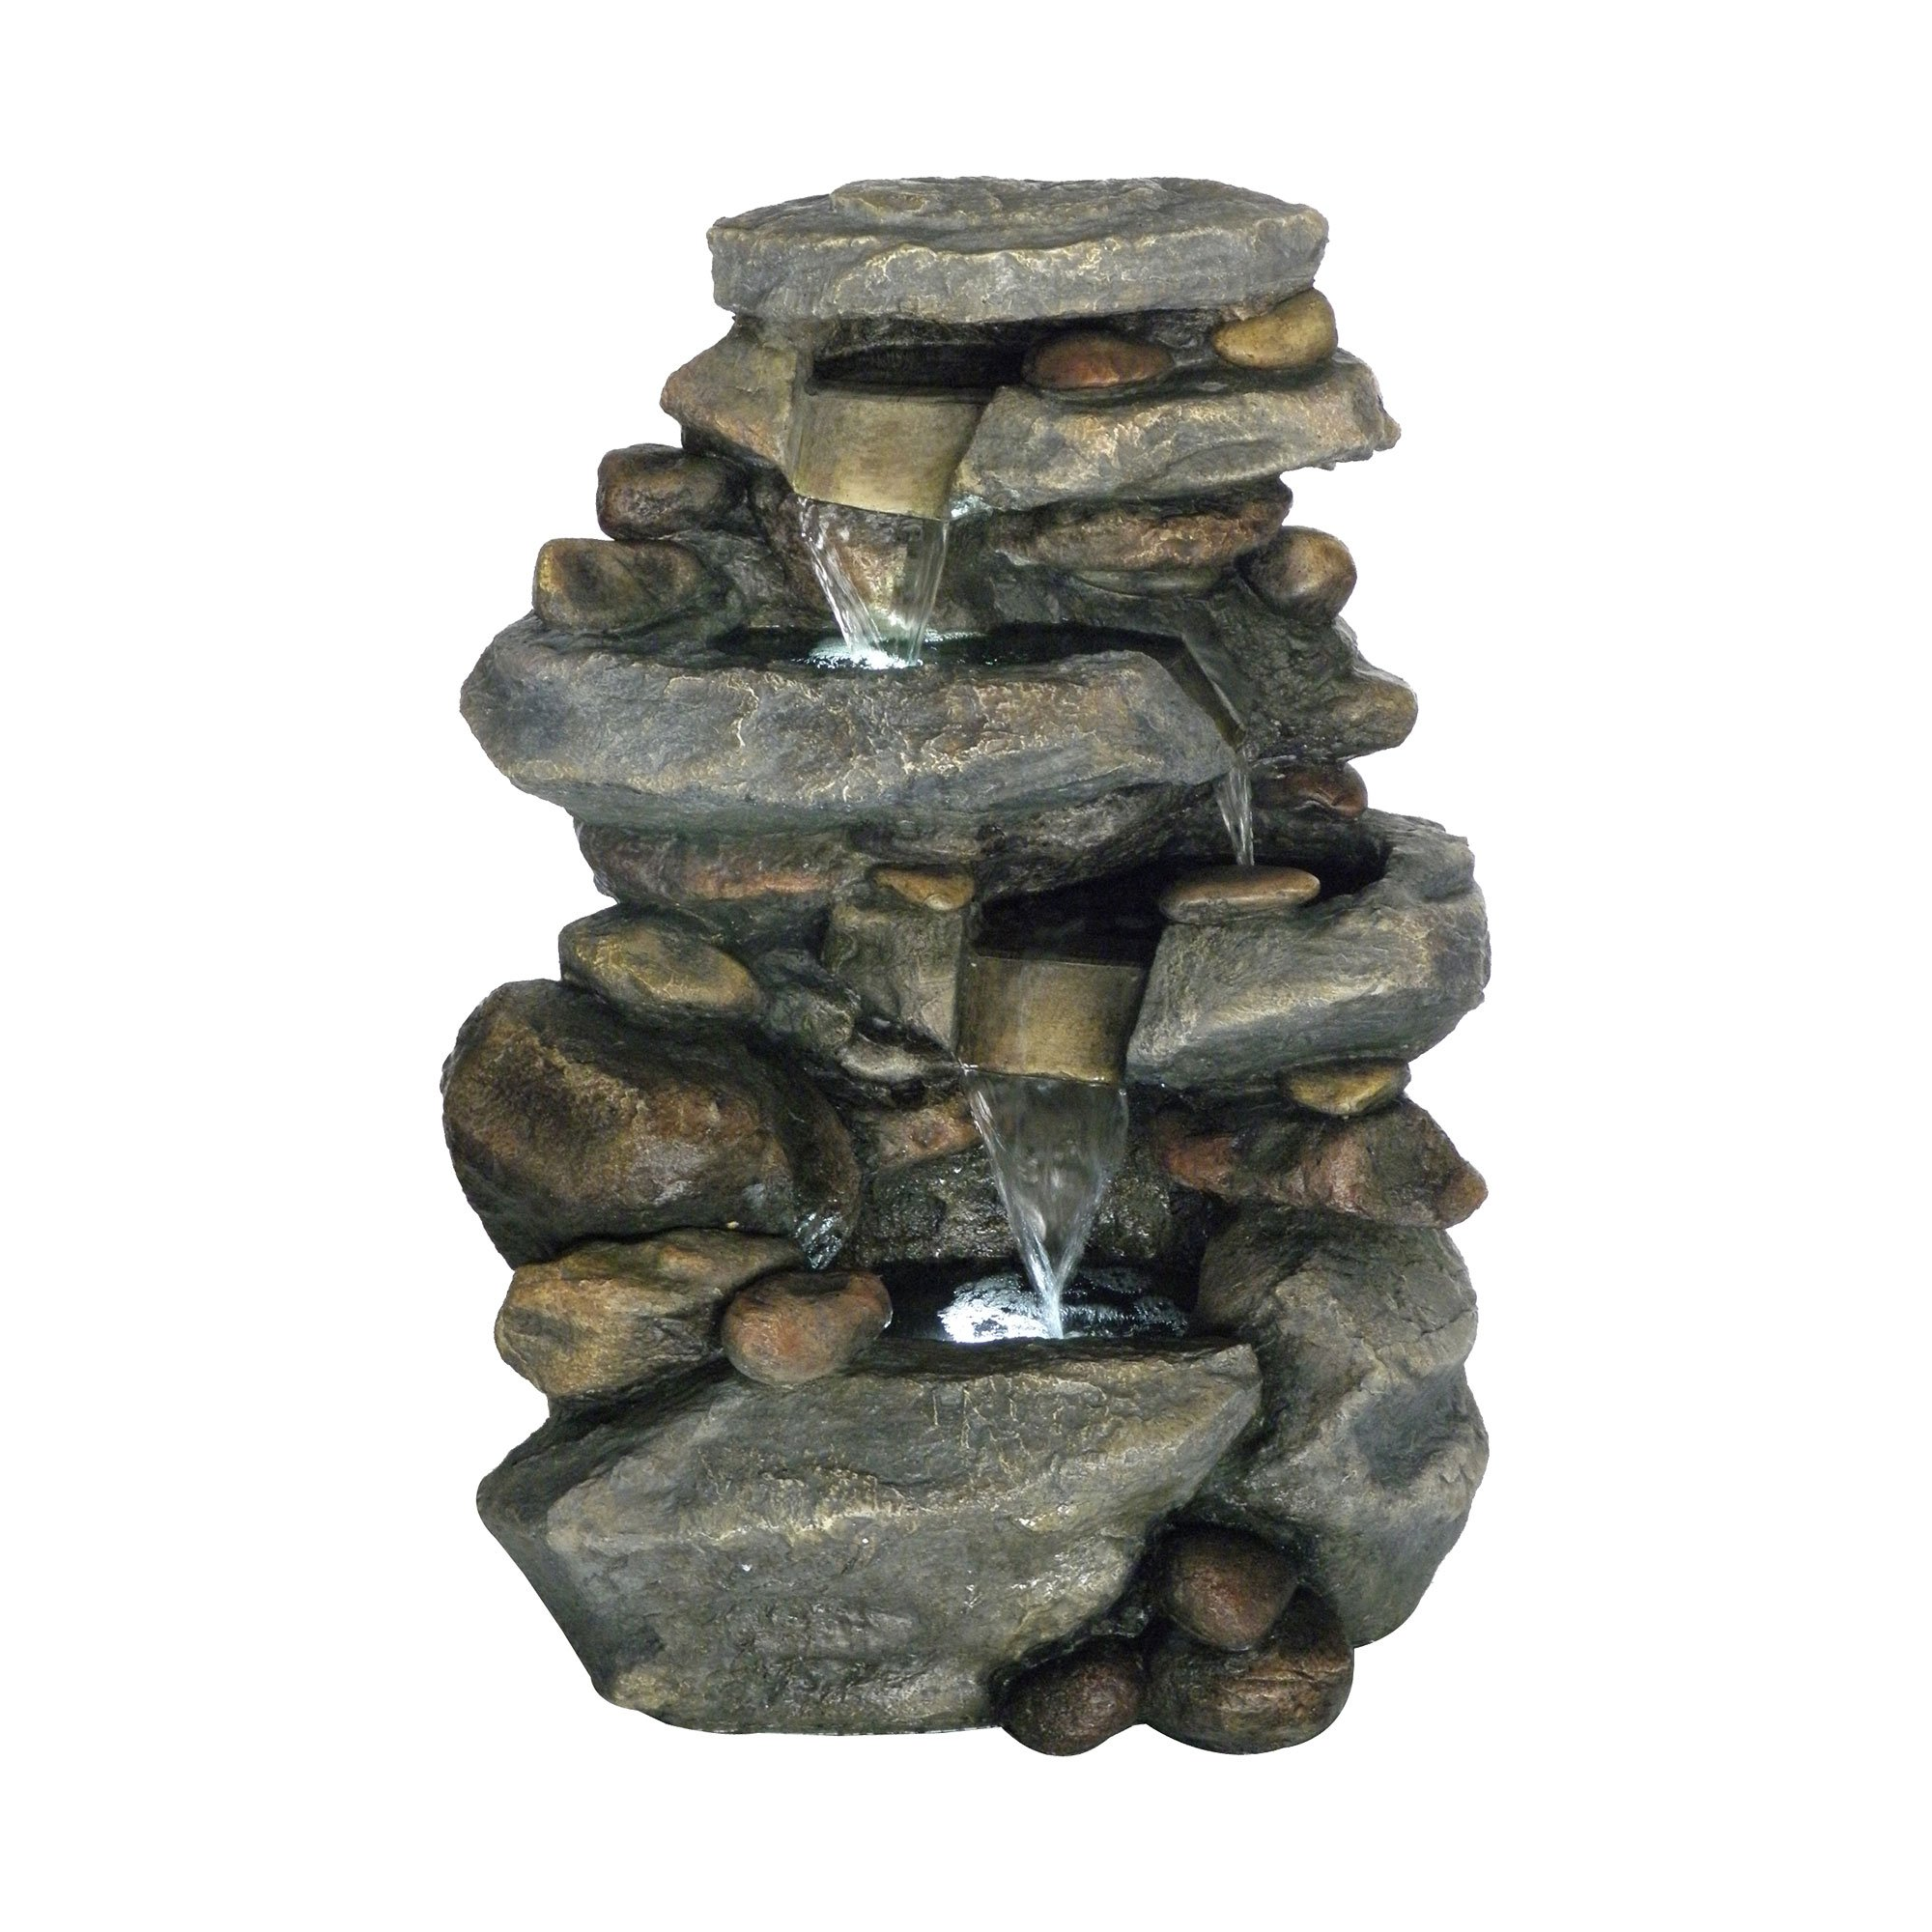 Outdoor Water Fountain With LED Lights, Lighted Cascade Waterfall, Natural Looking Stone and Soothing Sound for Patio and Garden Décor By Pure Garden by Pure Garden